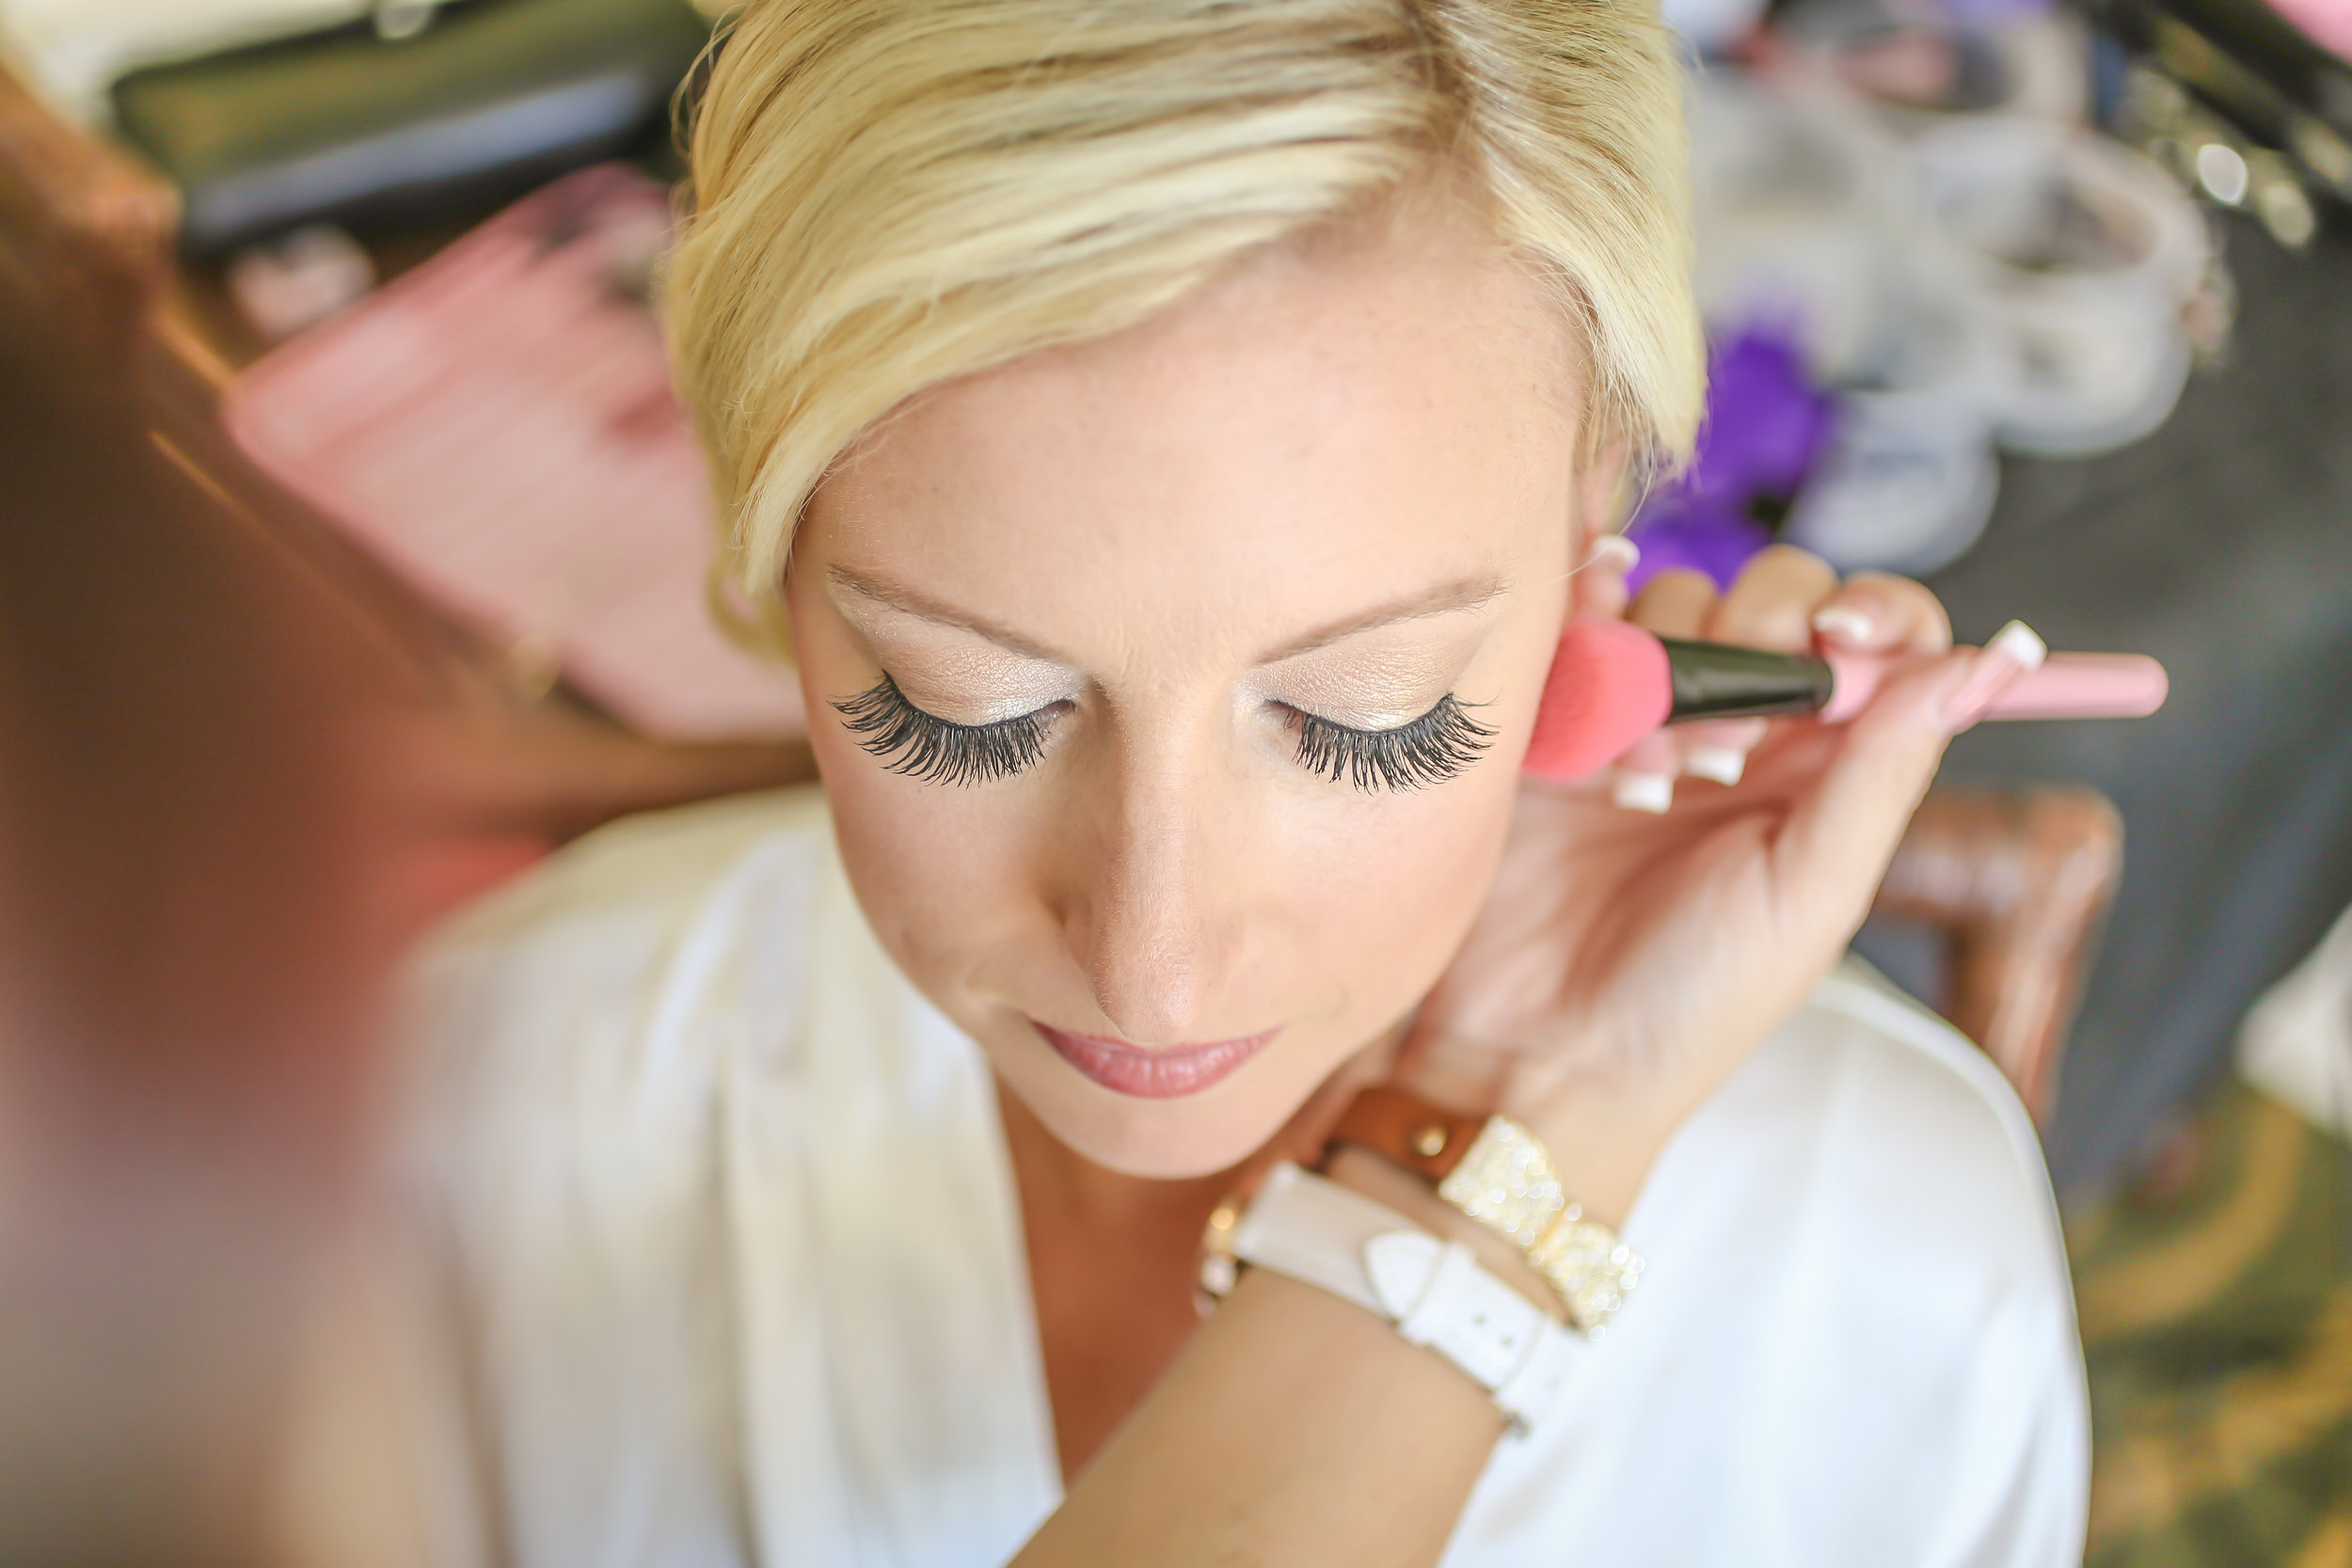 Soft yet glamorous makeup in neutral colors complimented the bride's attire.